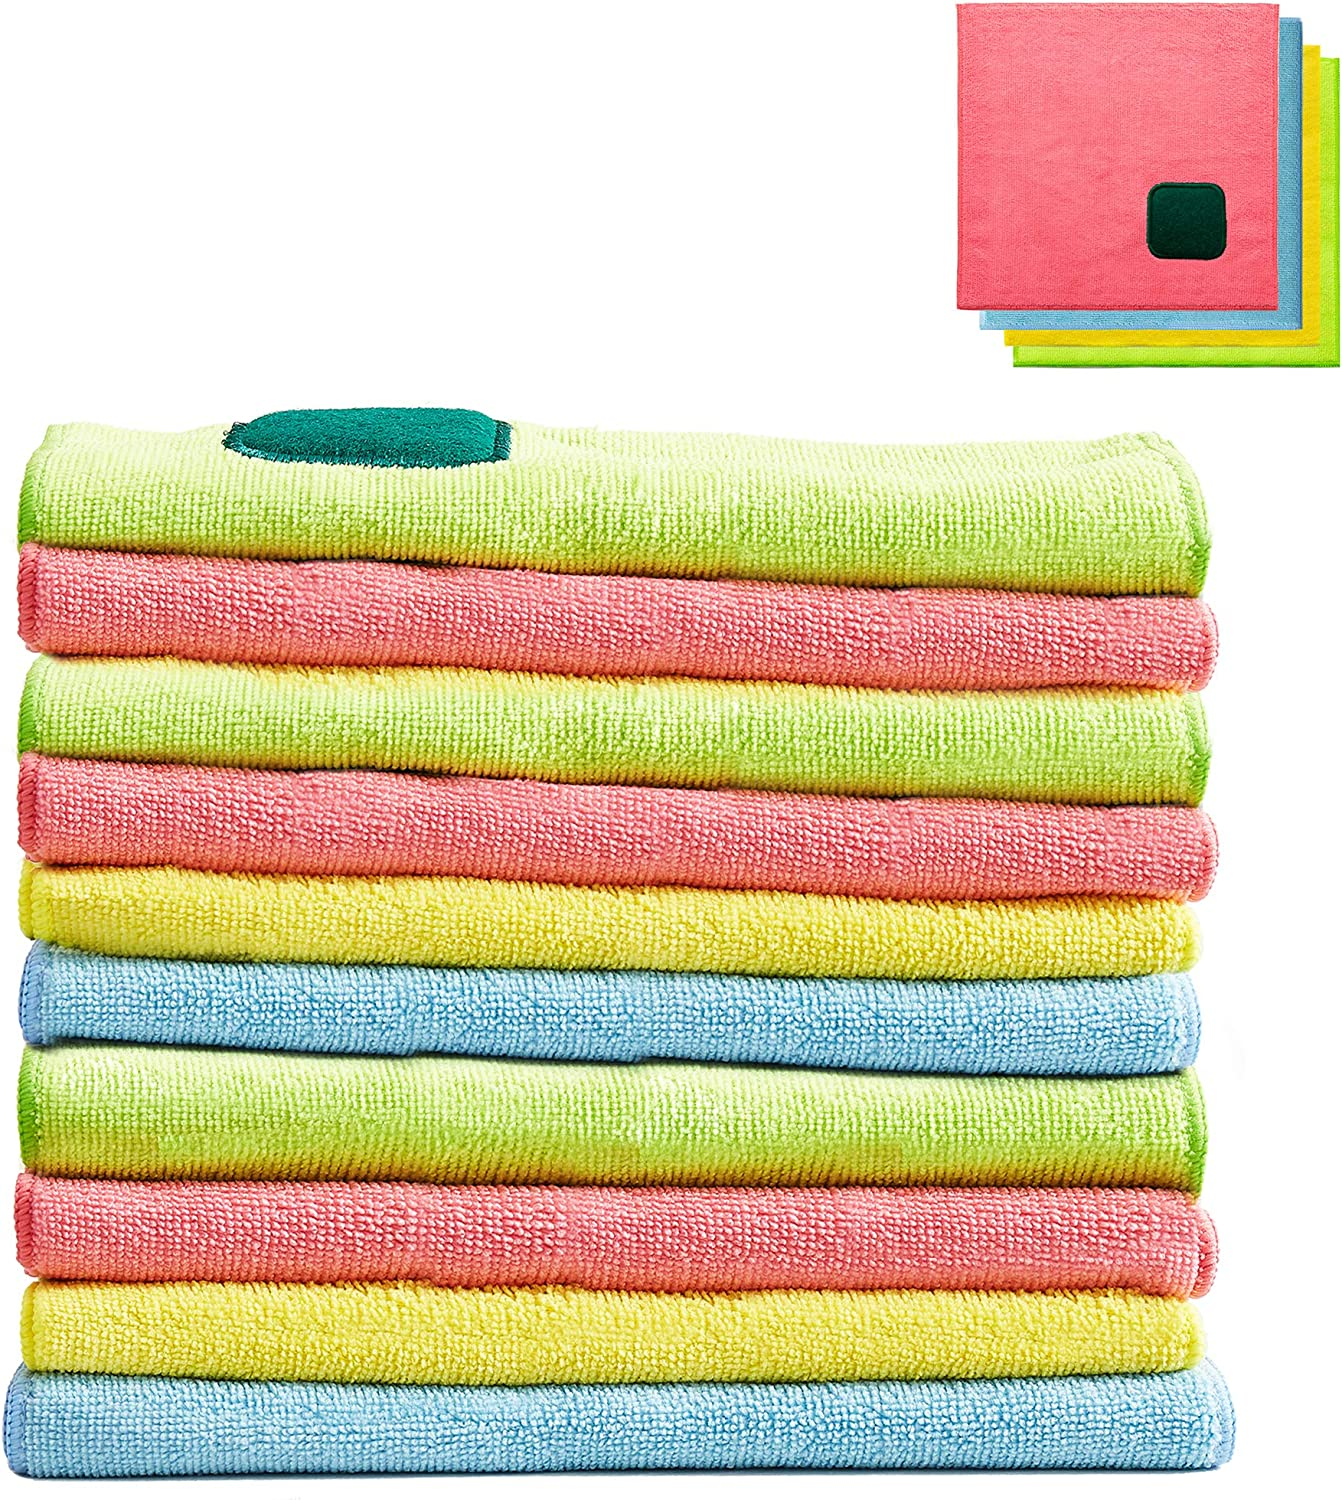 10 Pcs Opening large release sale 2 5 popular in 1 Microfiber Cleaning with Pad Cloths 12x1 Scouring